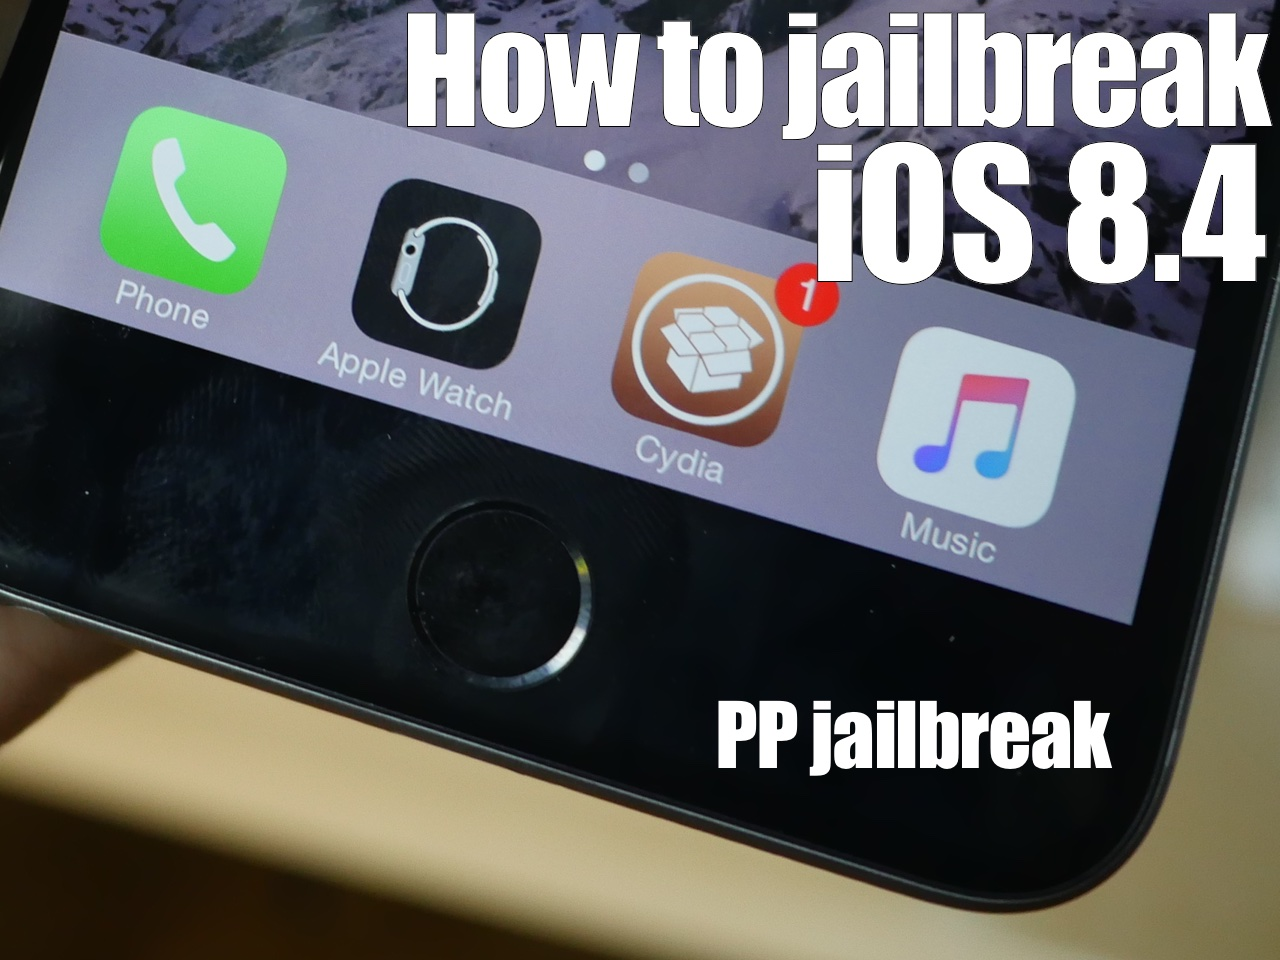 How to jailbreak iOS 8.4 with PP Jailbreak